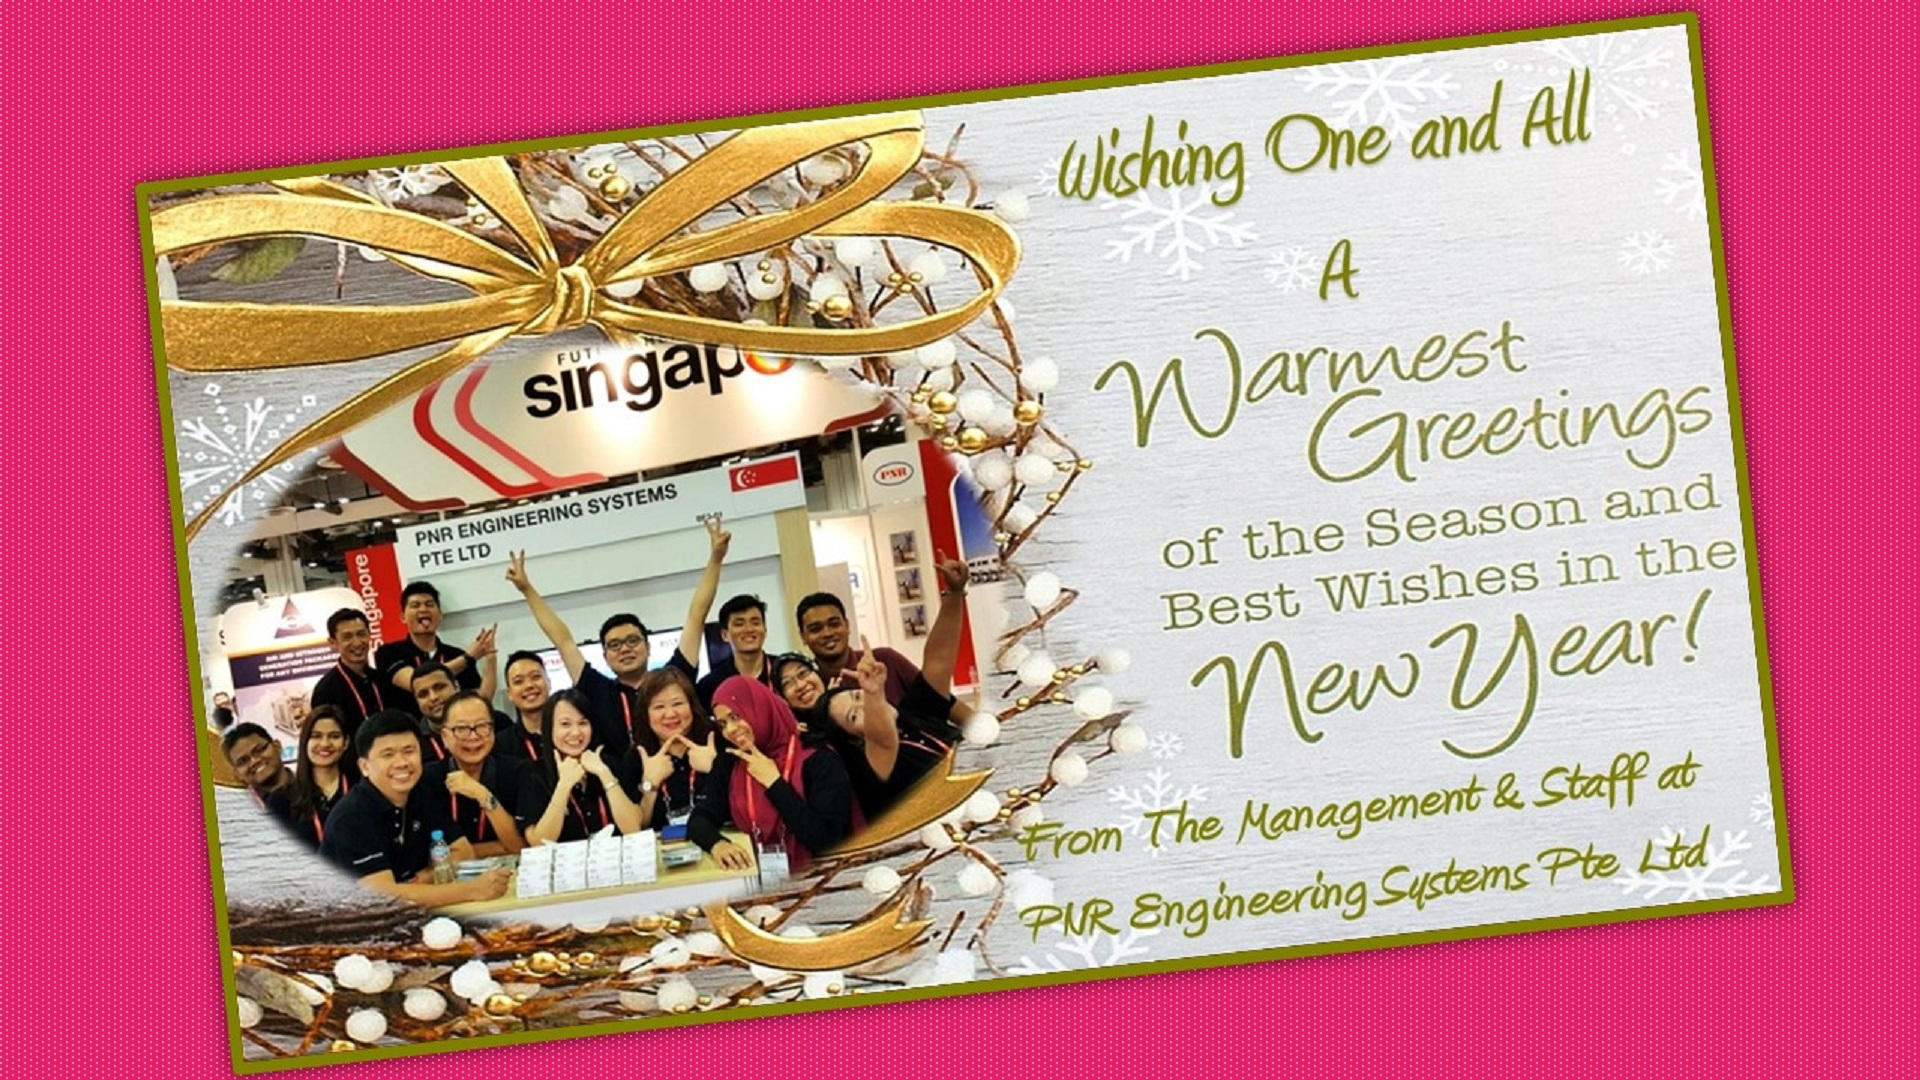 Pnr Wishing One And All A Warmest Greetings Of The Season And Best